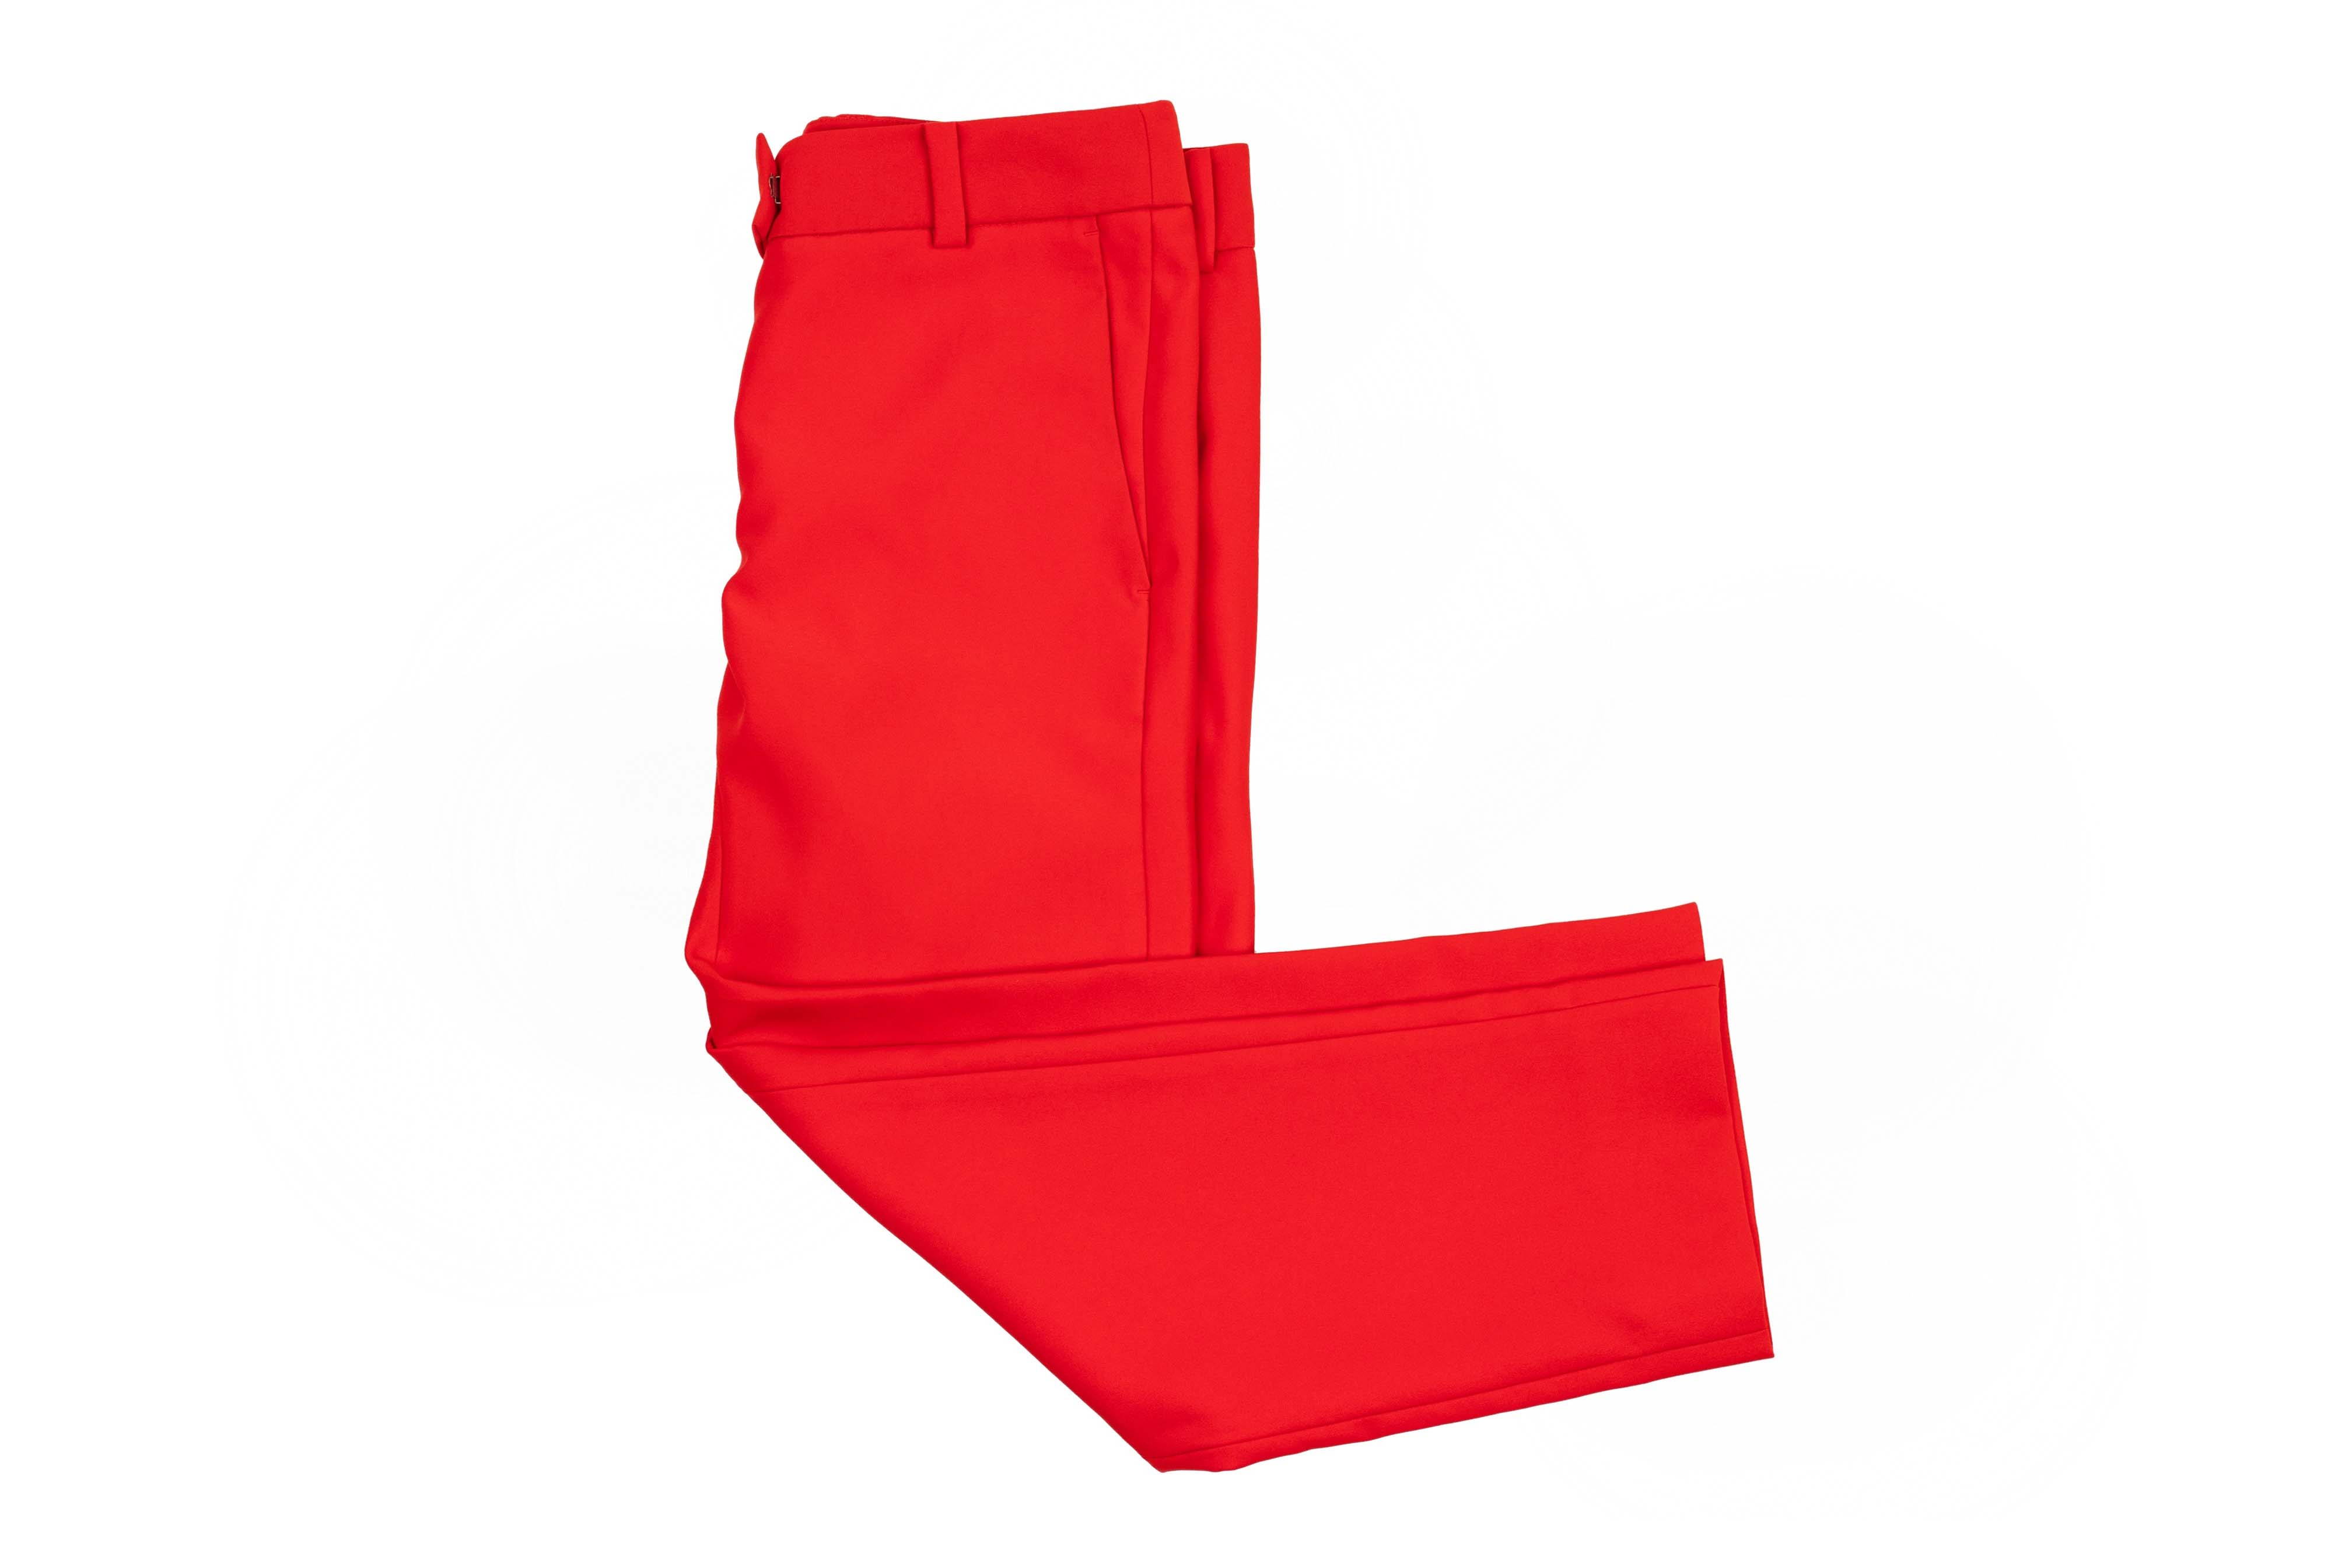 A PAIR OF CALVIN KLEIN RED TROUSERS